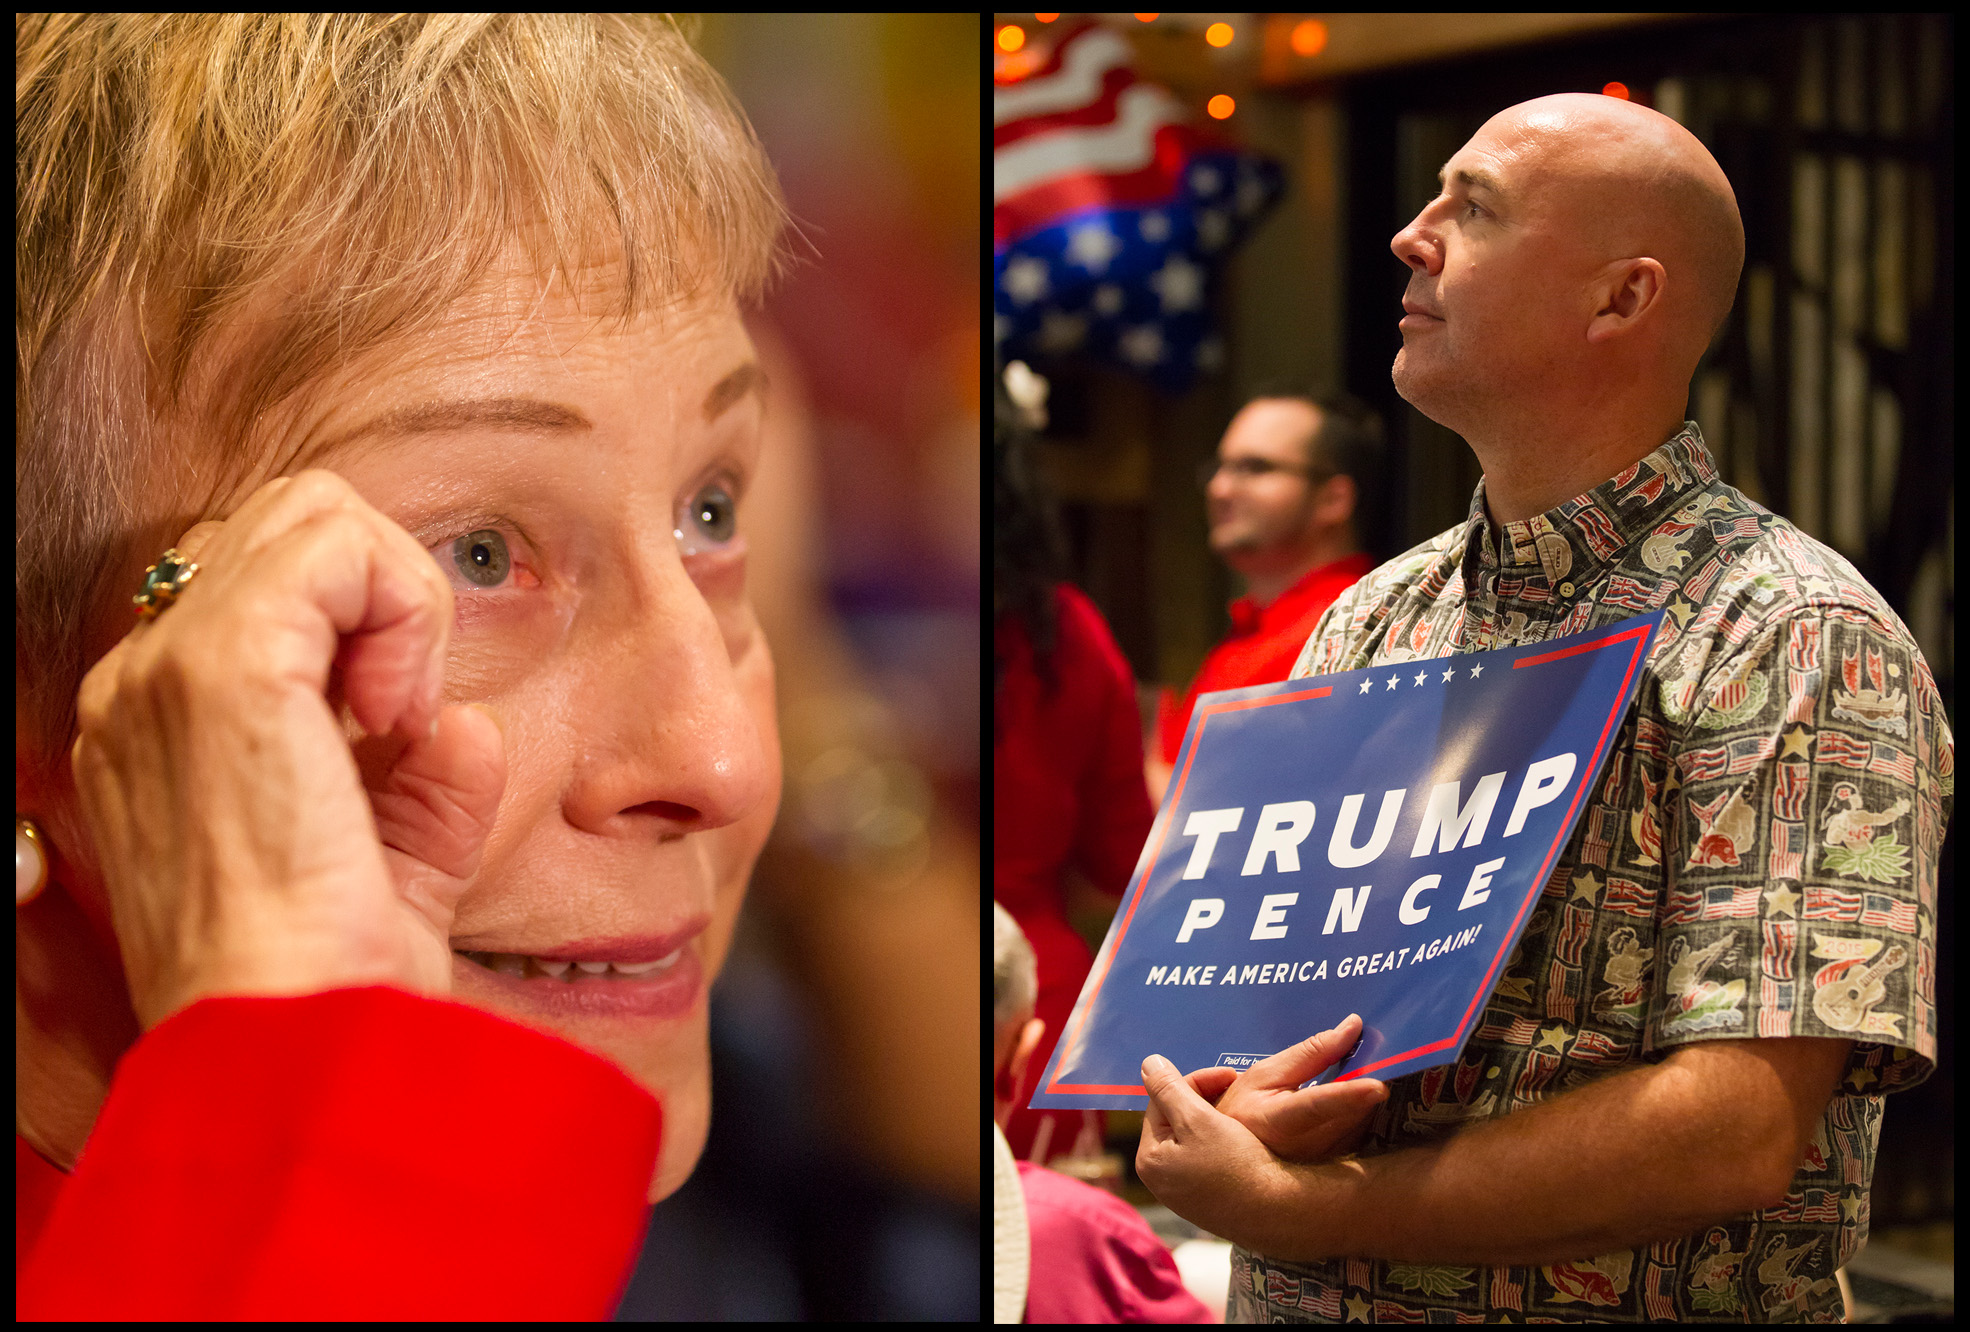 <p>Trump supporters Judy Franklin, left, and Arthur Yri reacted to their candidate winning the presidency. — Eugene Tanner/Civil Beat</p>